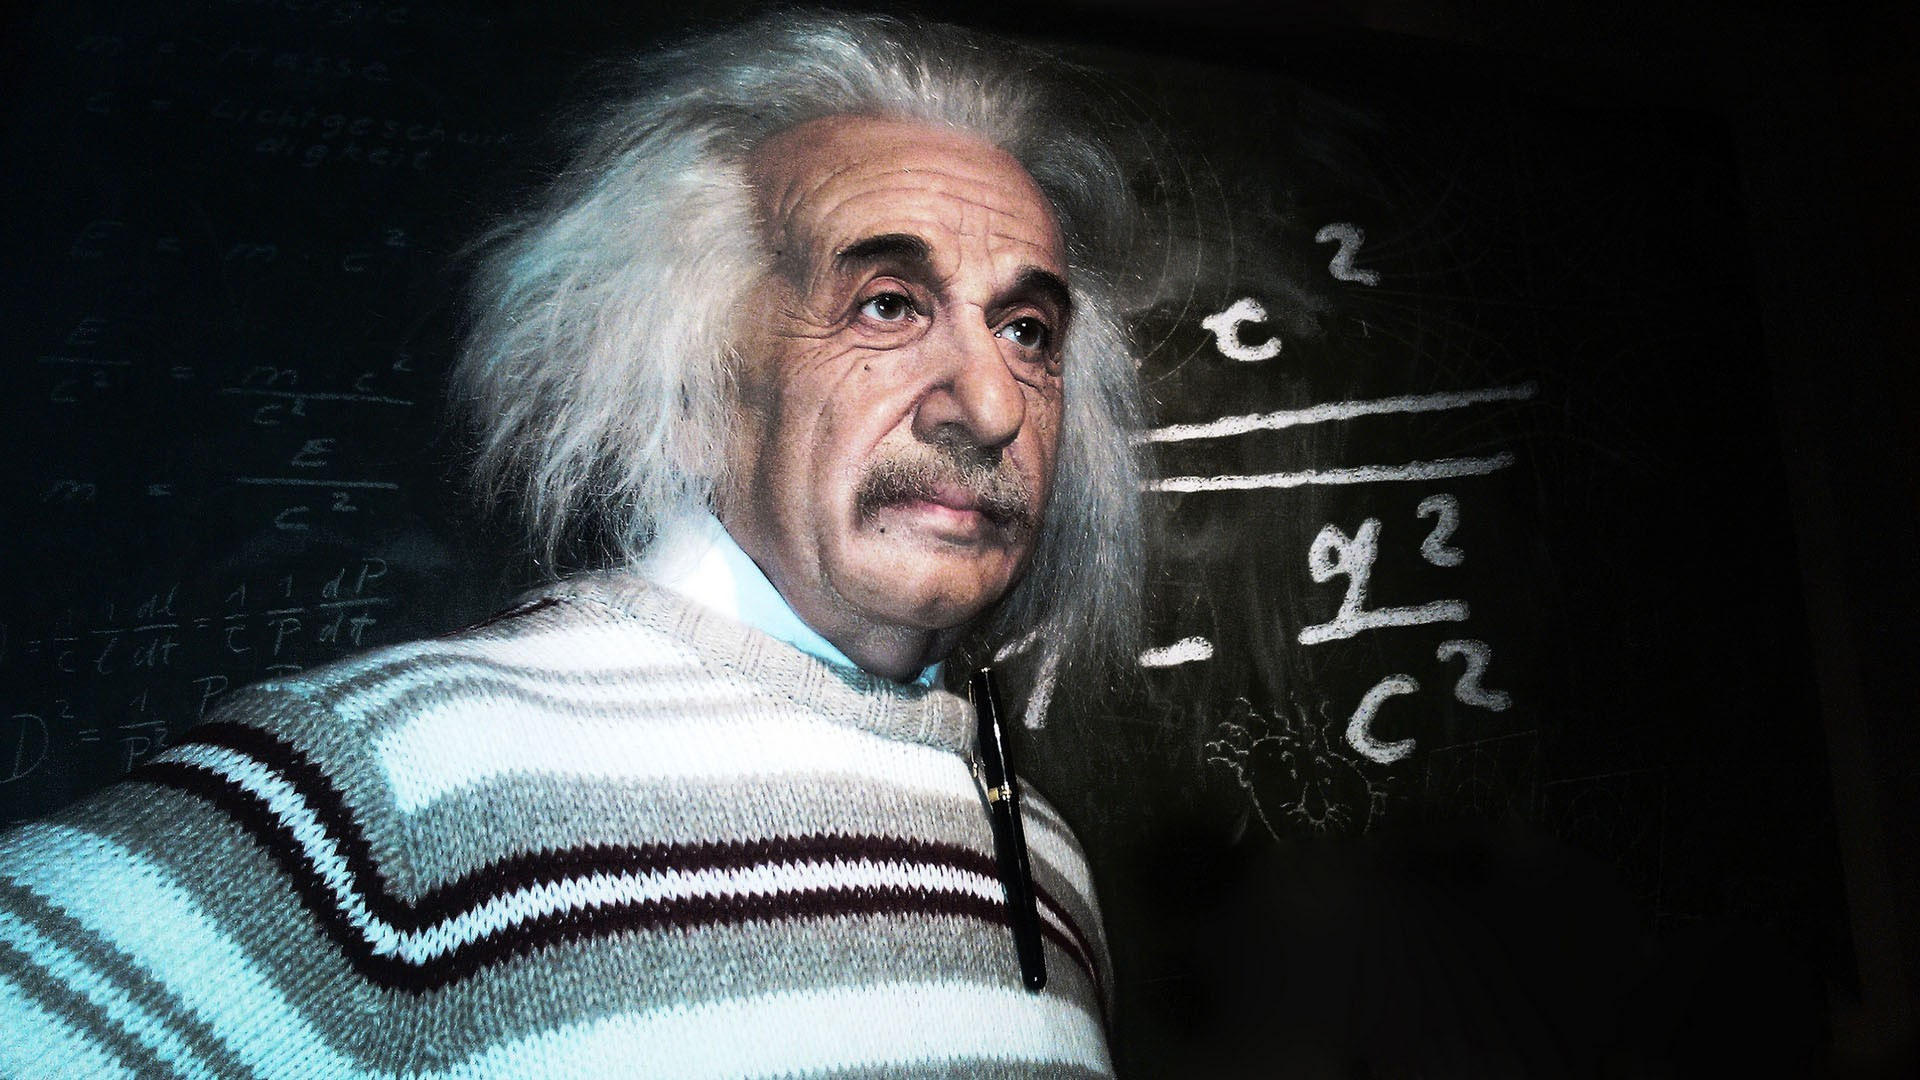 Albert einstein hd wallpaper background image - Albert einstein hd images ...